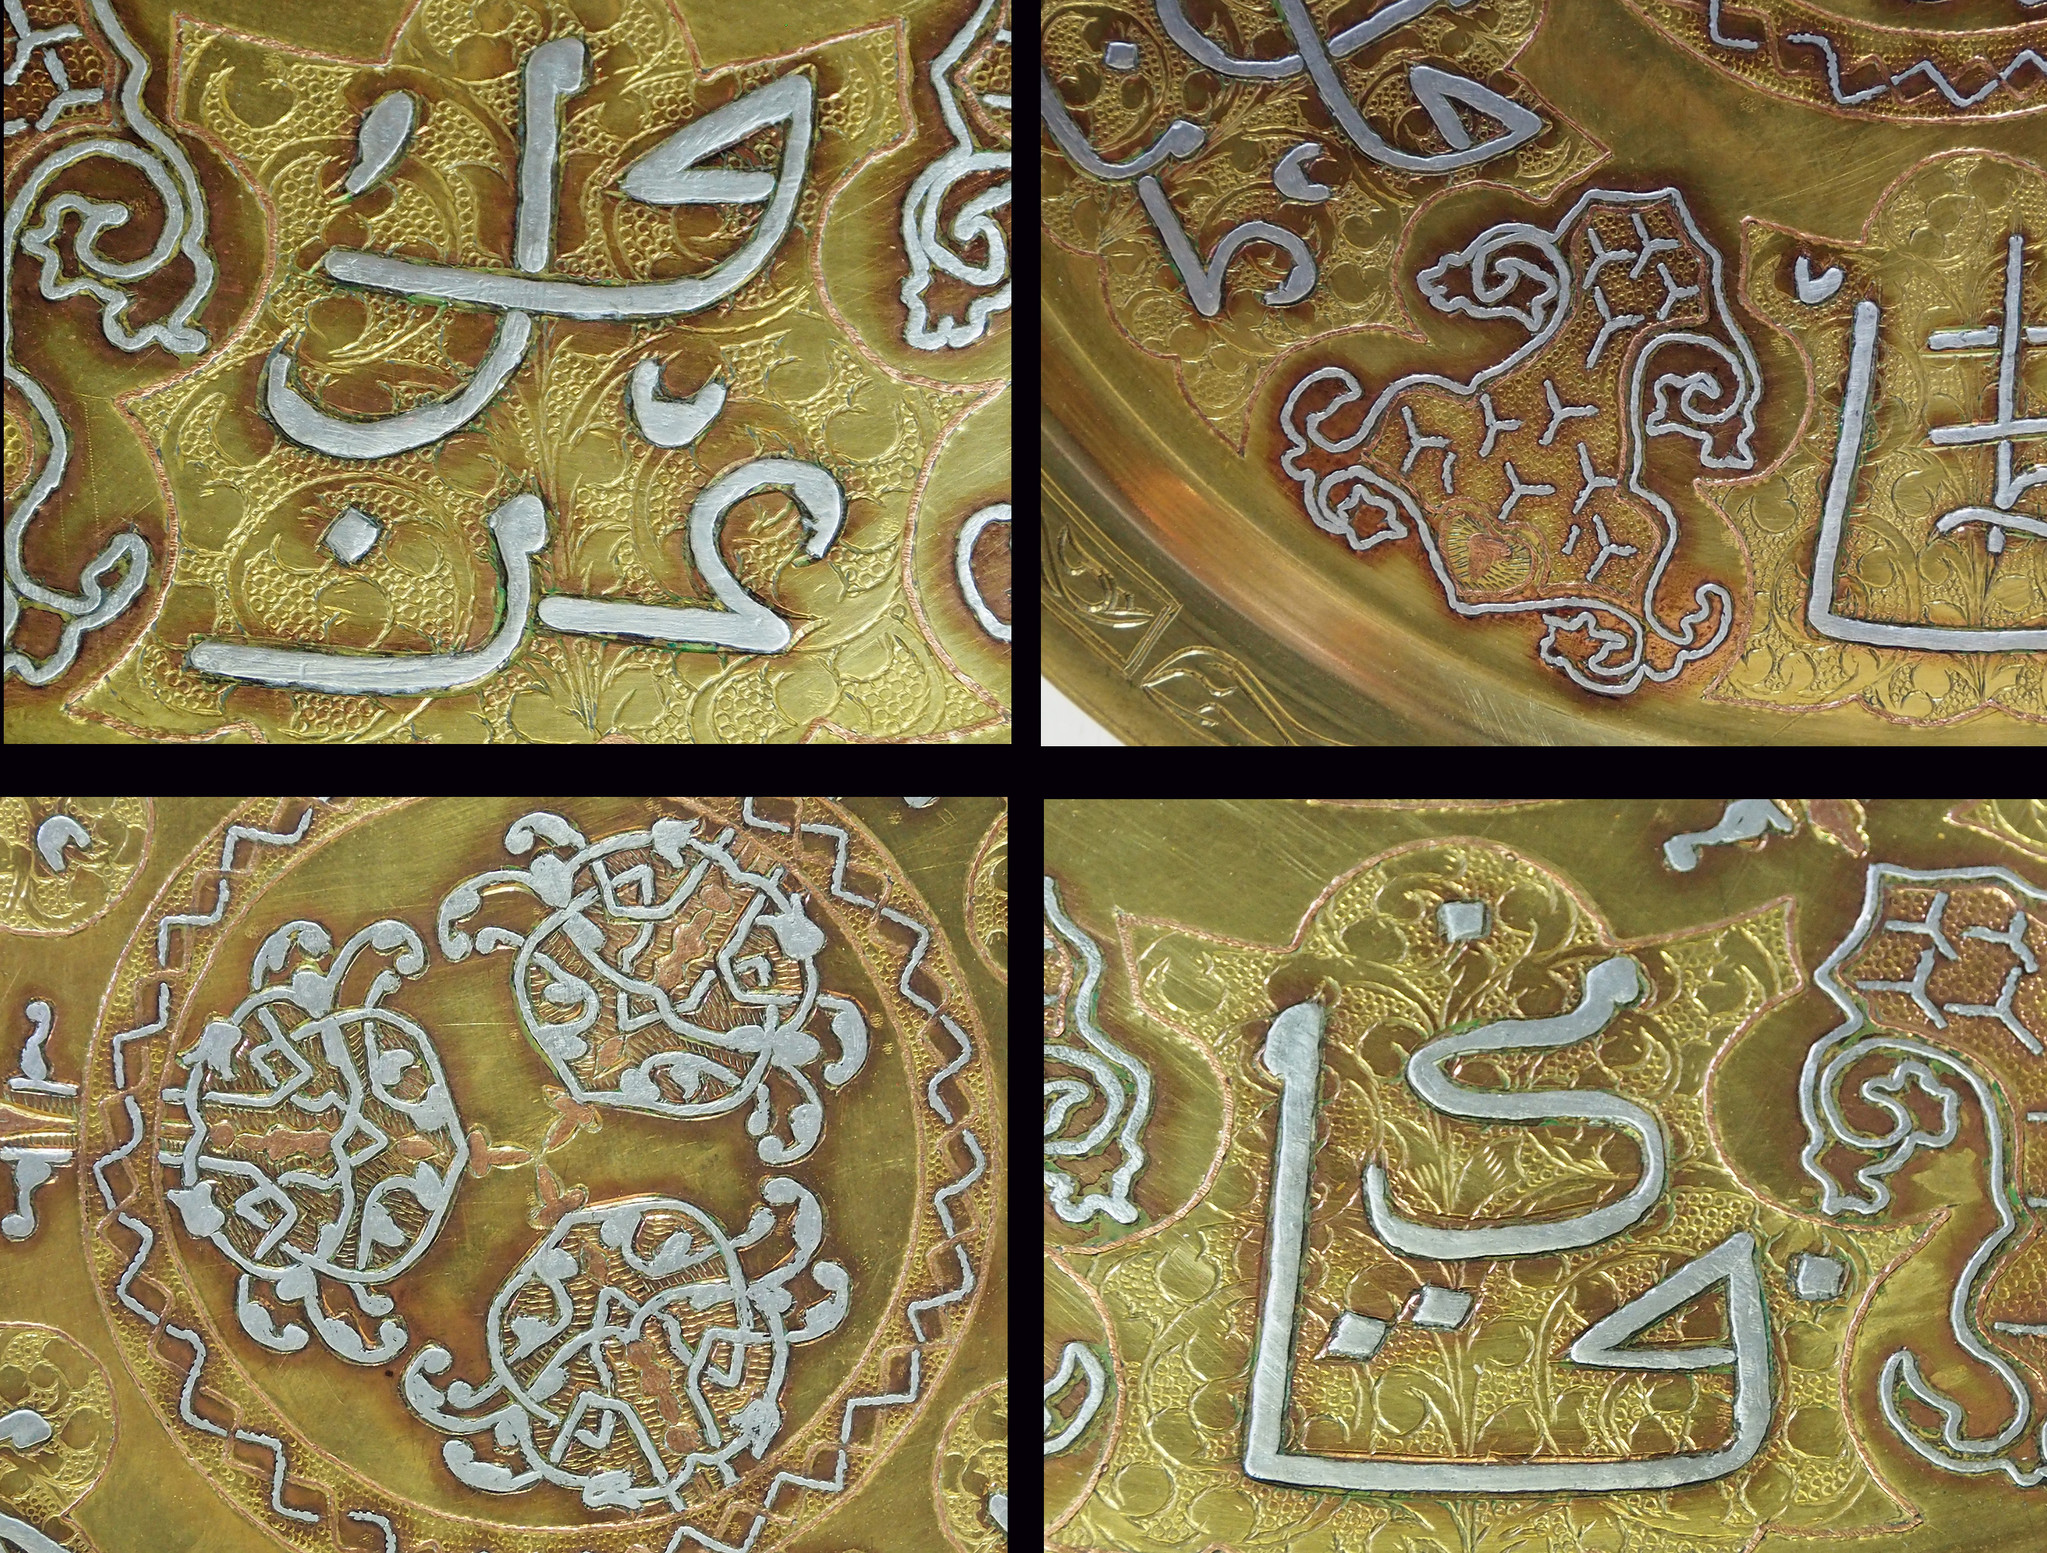 50 cm Antique ottoman orient Islamic  Hammer Engraved Brass table Tea table side table Tray from Afghanistan  No-21/J